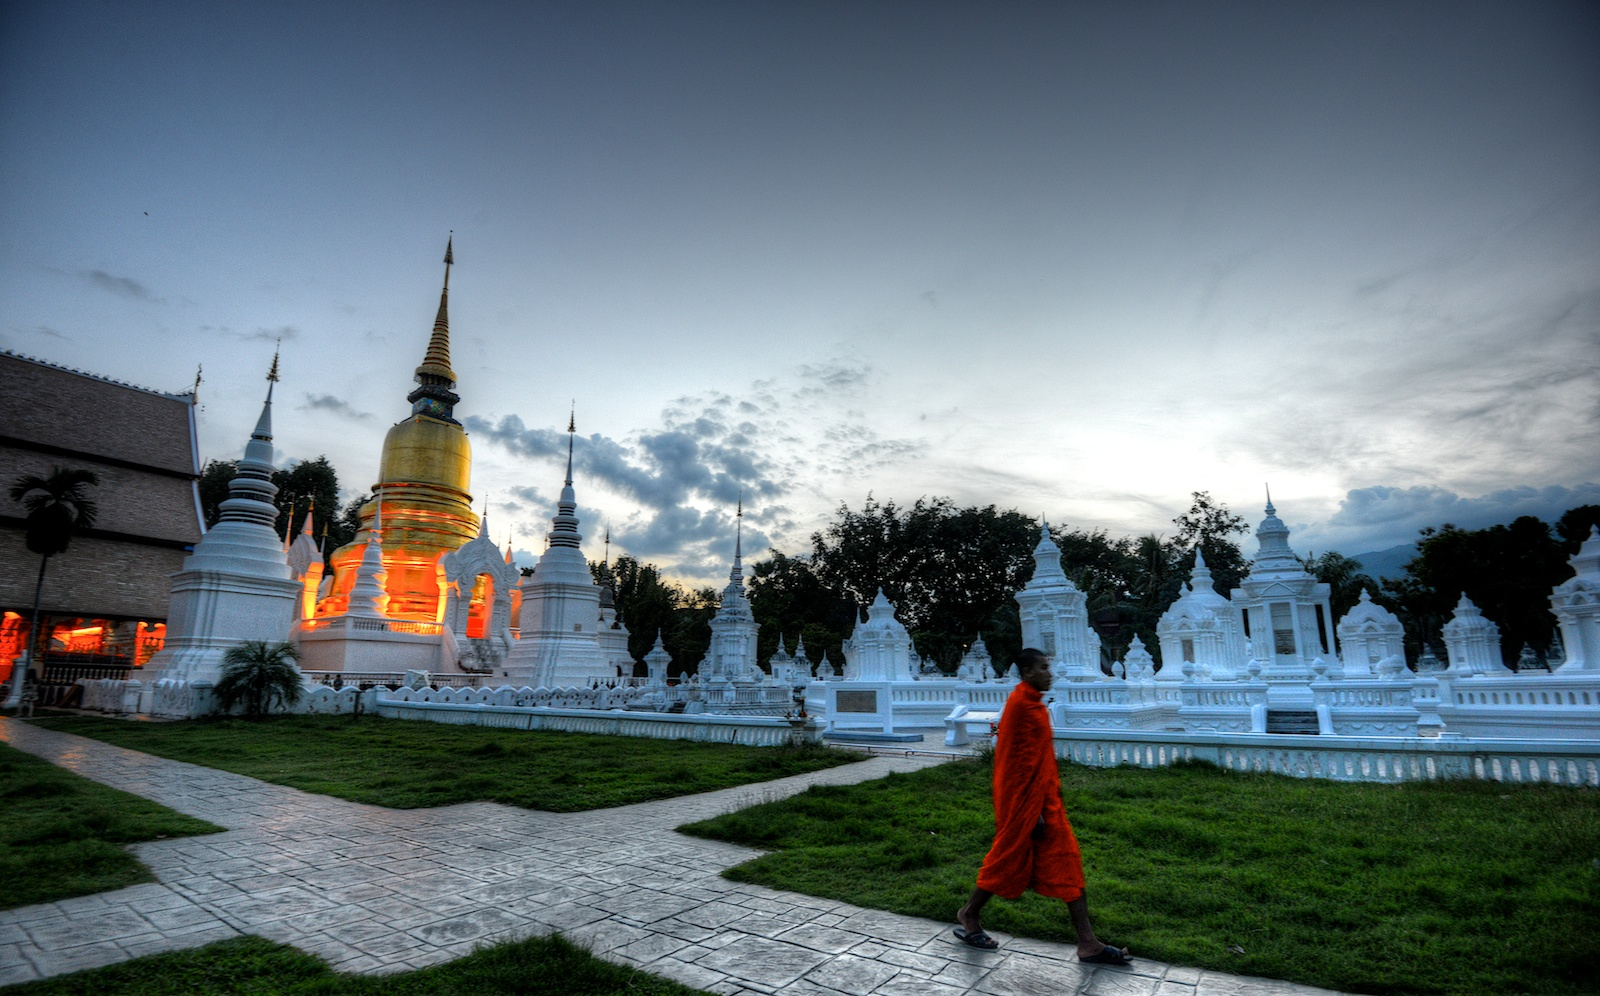 Chiang Mai - Town in Thailand - Sightseeing and Landmarks - Thousand Wonders